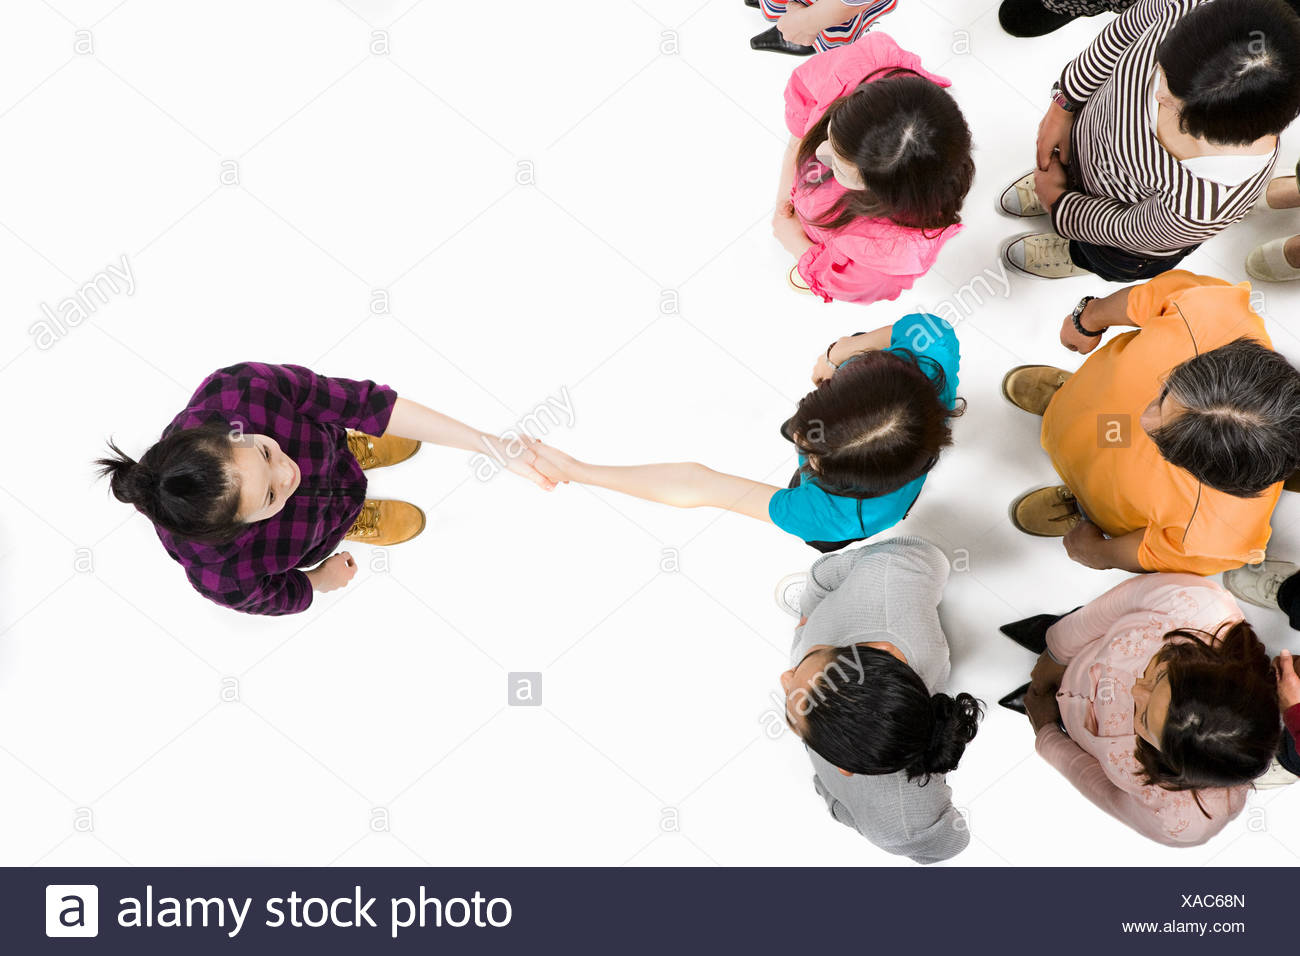 Woman shaking hands with someone in crowd - Stock Image